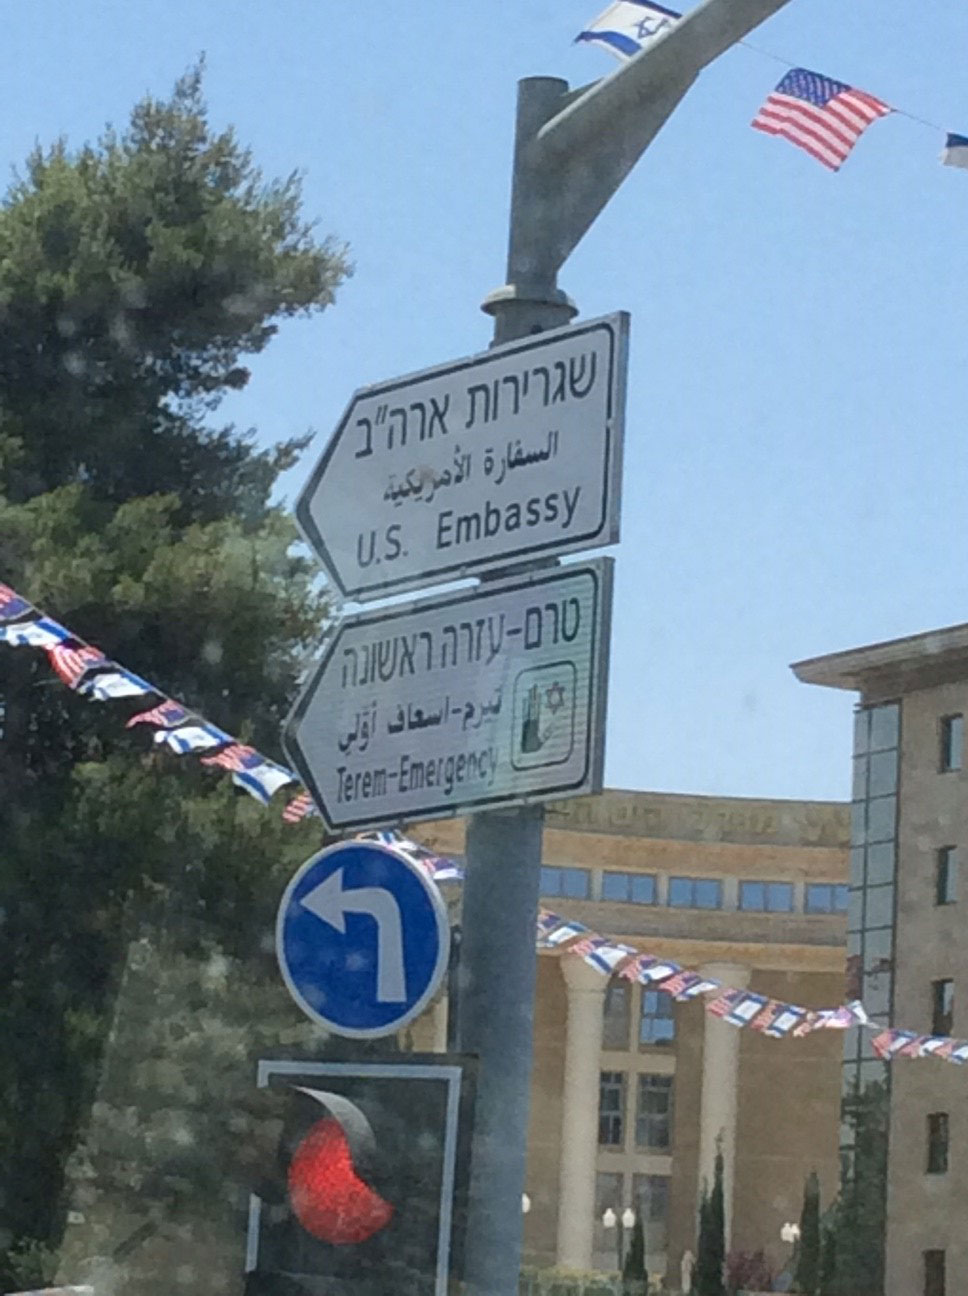 New signs point the way to the U.S. Embassy, relocated in May from Tel Aviv to the Arnona neighborhood of Jerusalem.